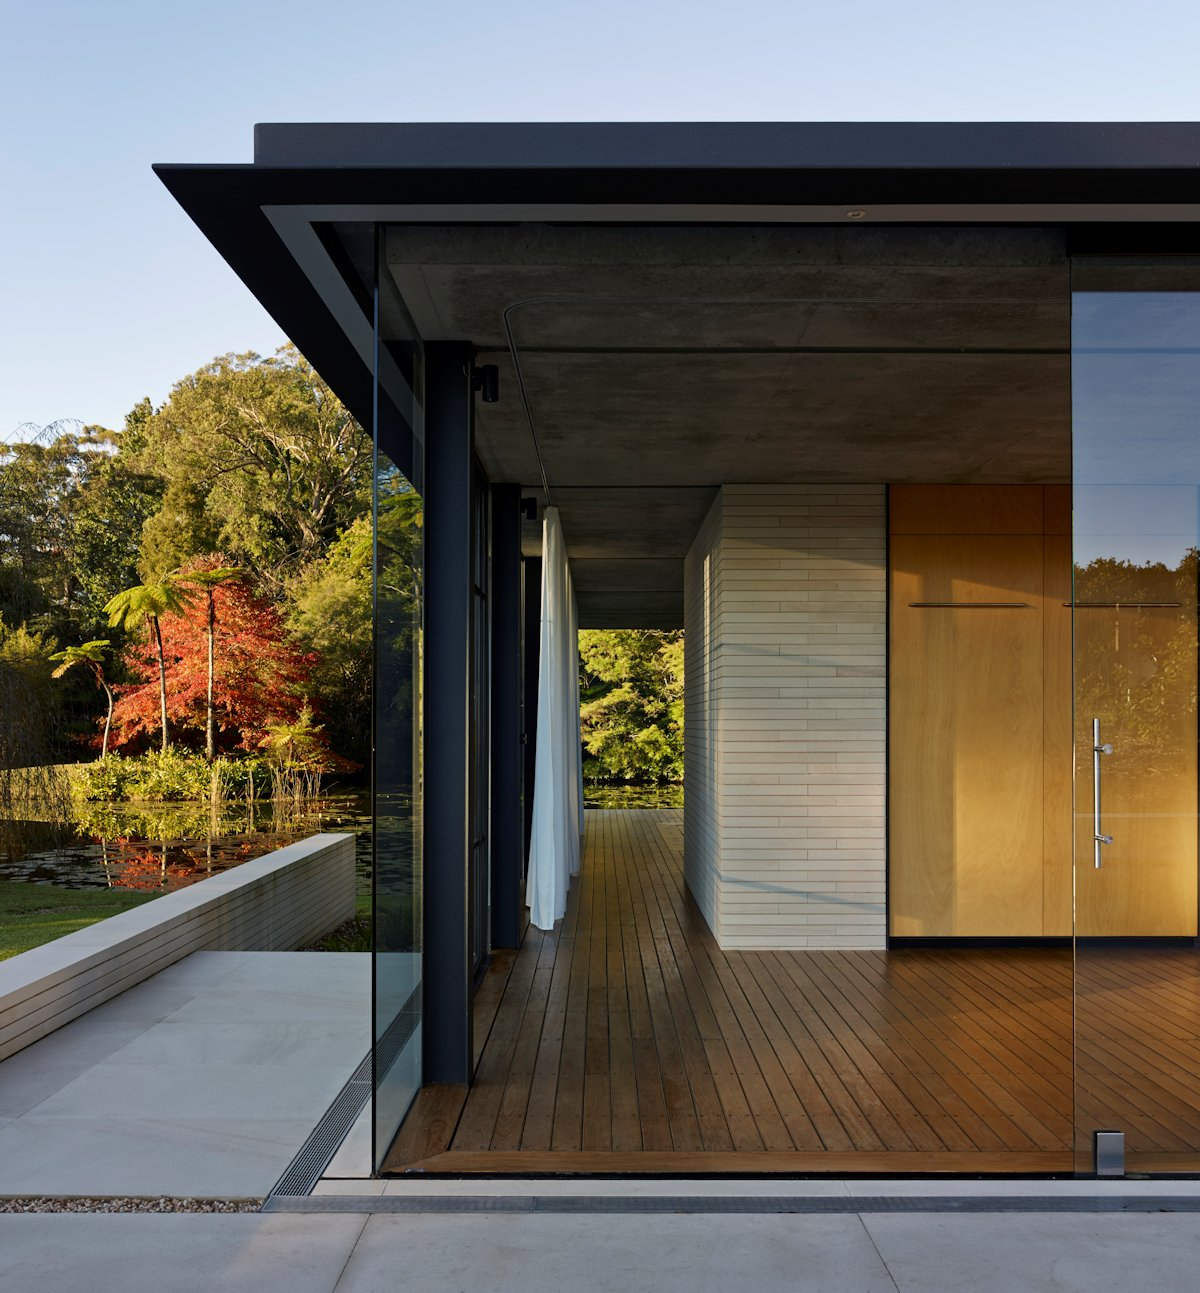 Wood Flooring, Large Glass Windows, Glass Pavilion in Somersby, Australia